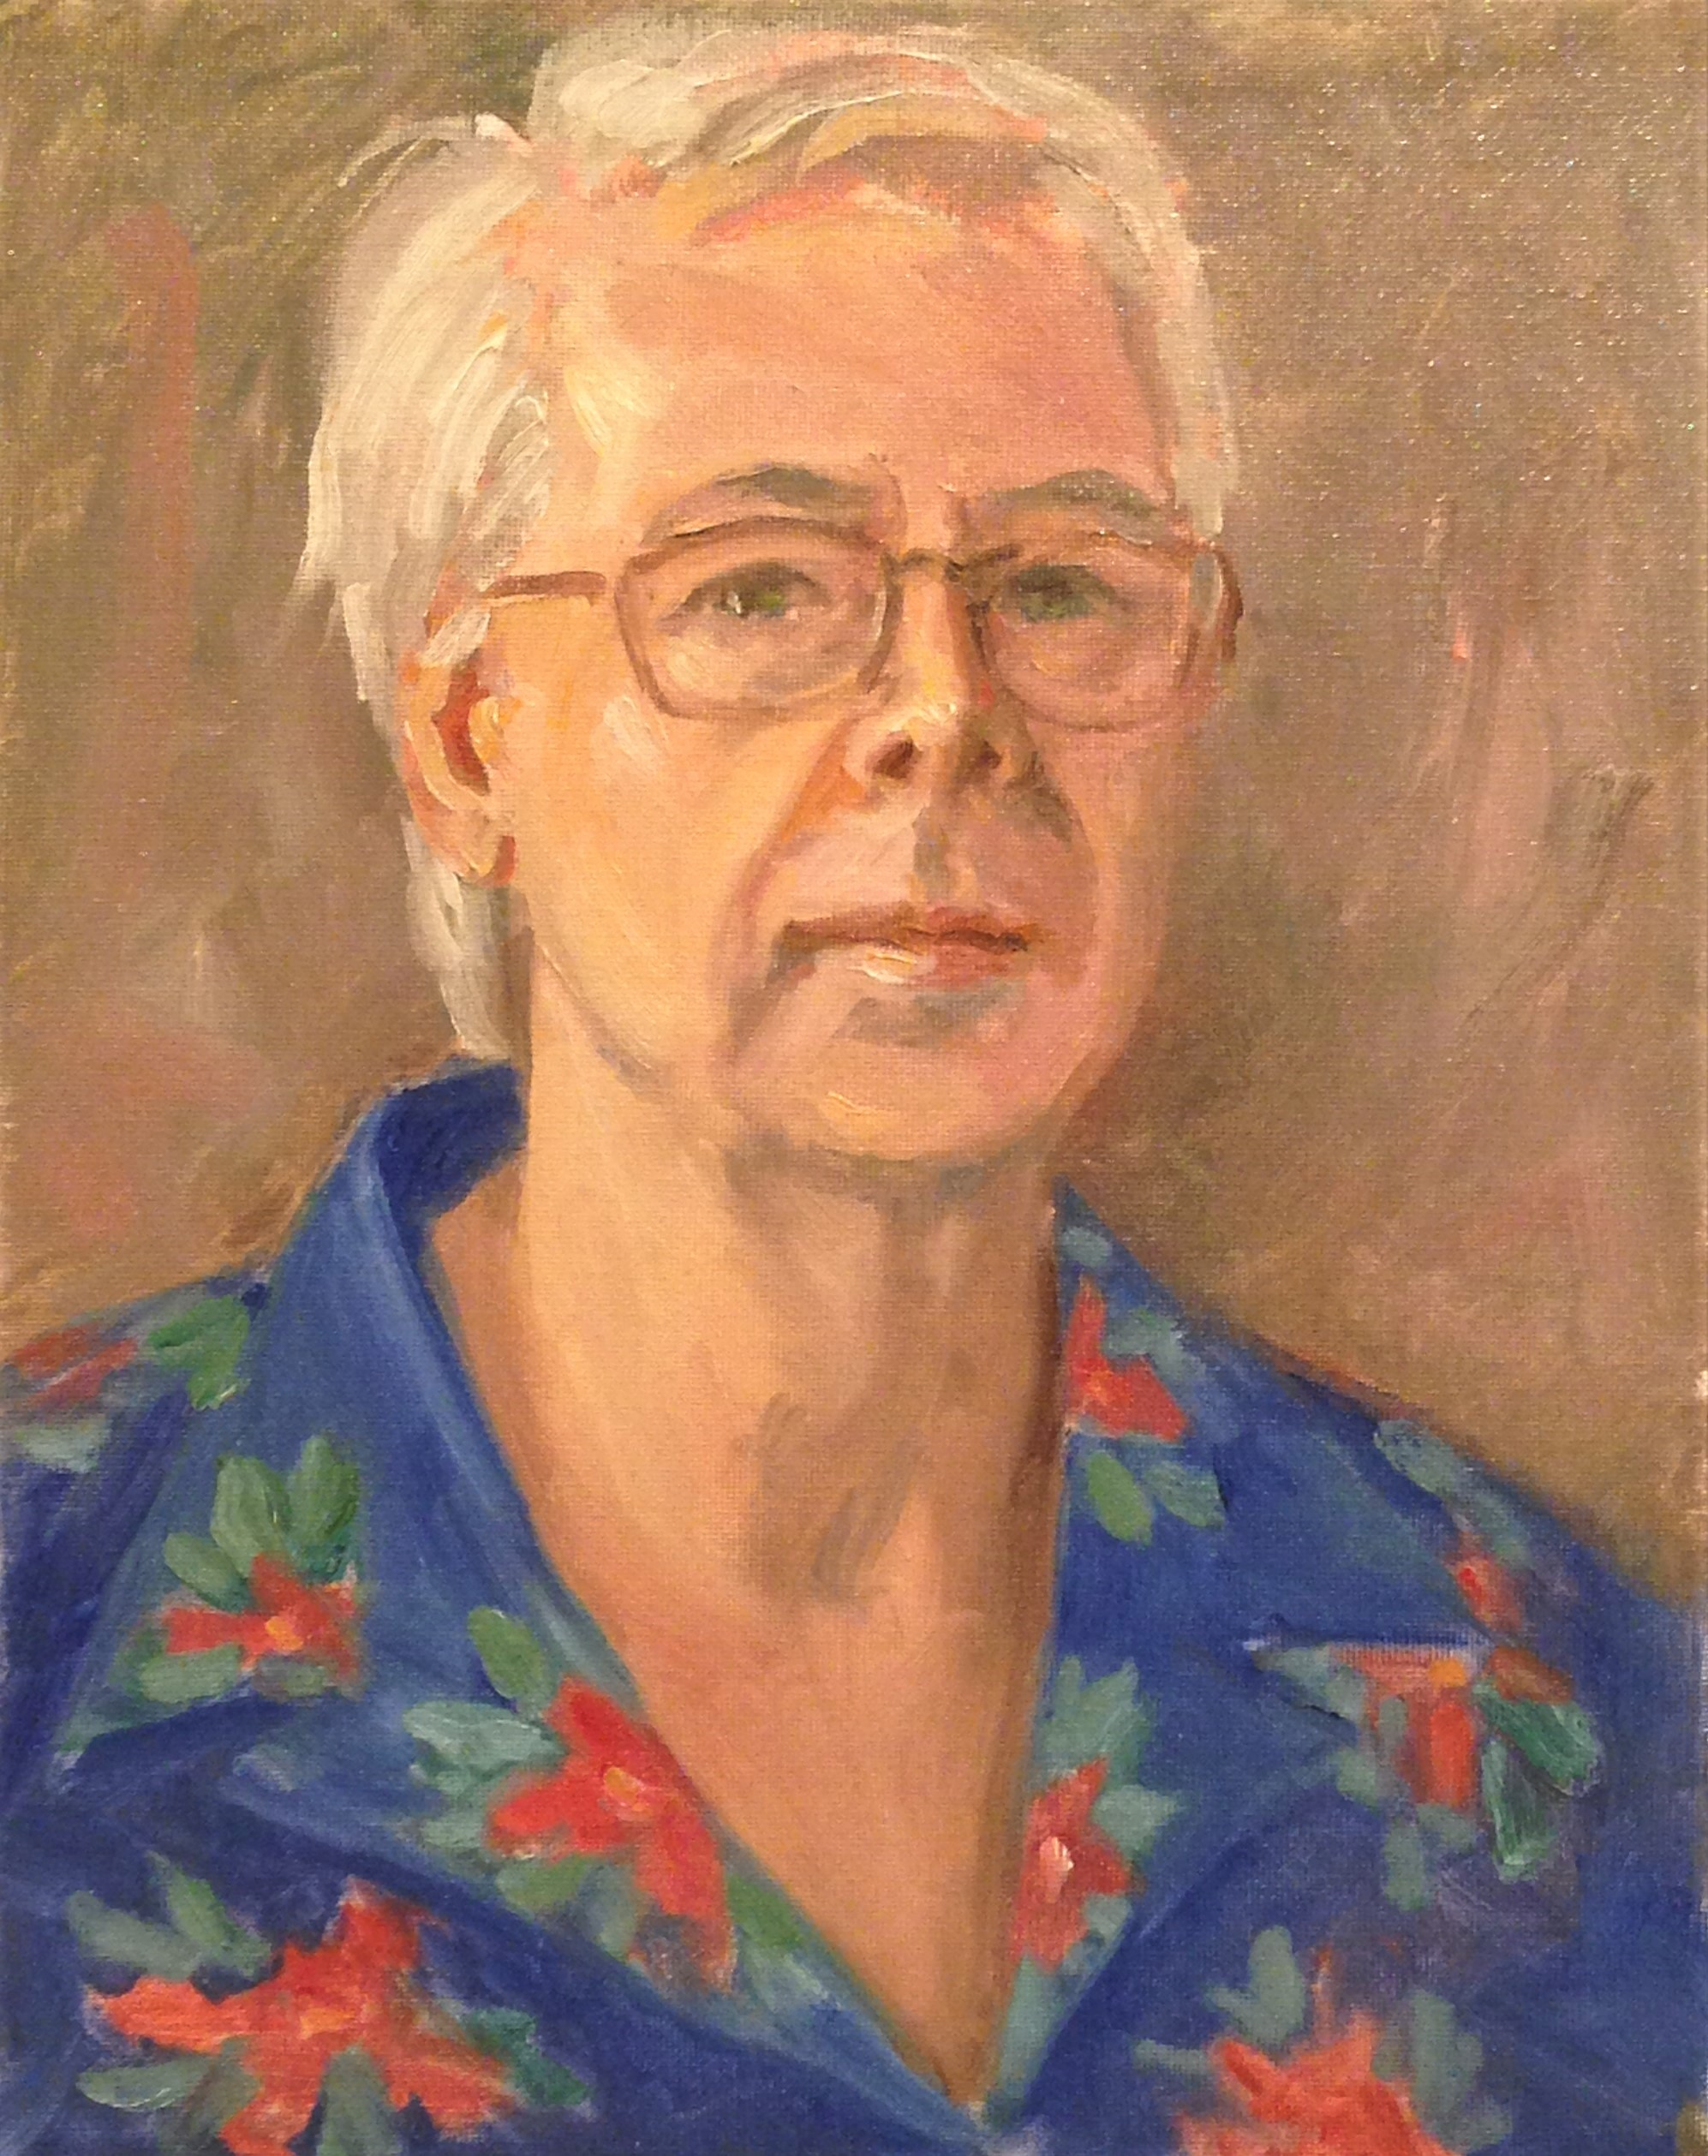 Self-Portrait in Hawaiian Shirt